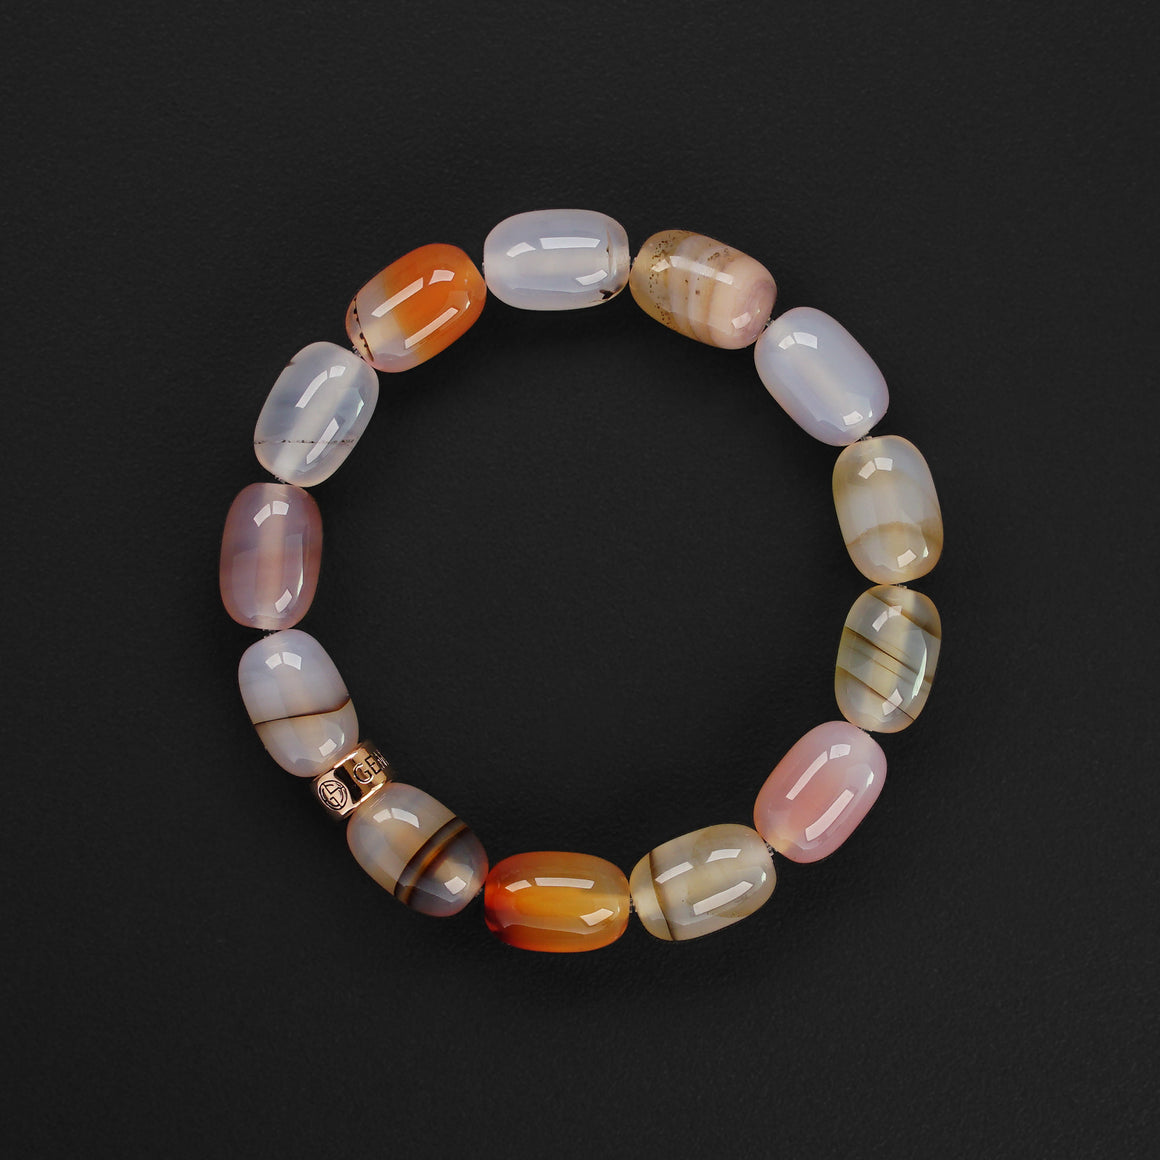 Montana Agate natural gemstone bracelet with branded rose gold charm by Gems In Style Jewellery.